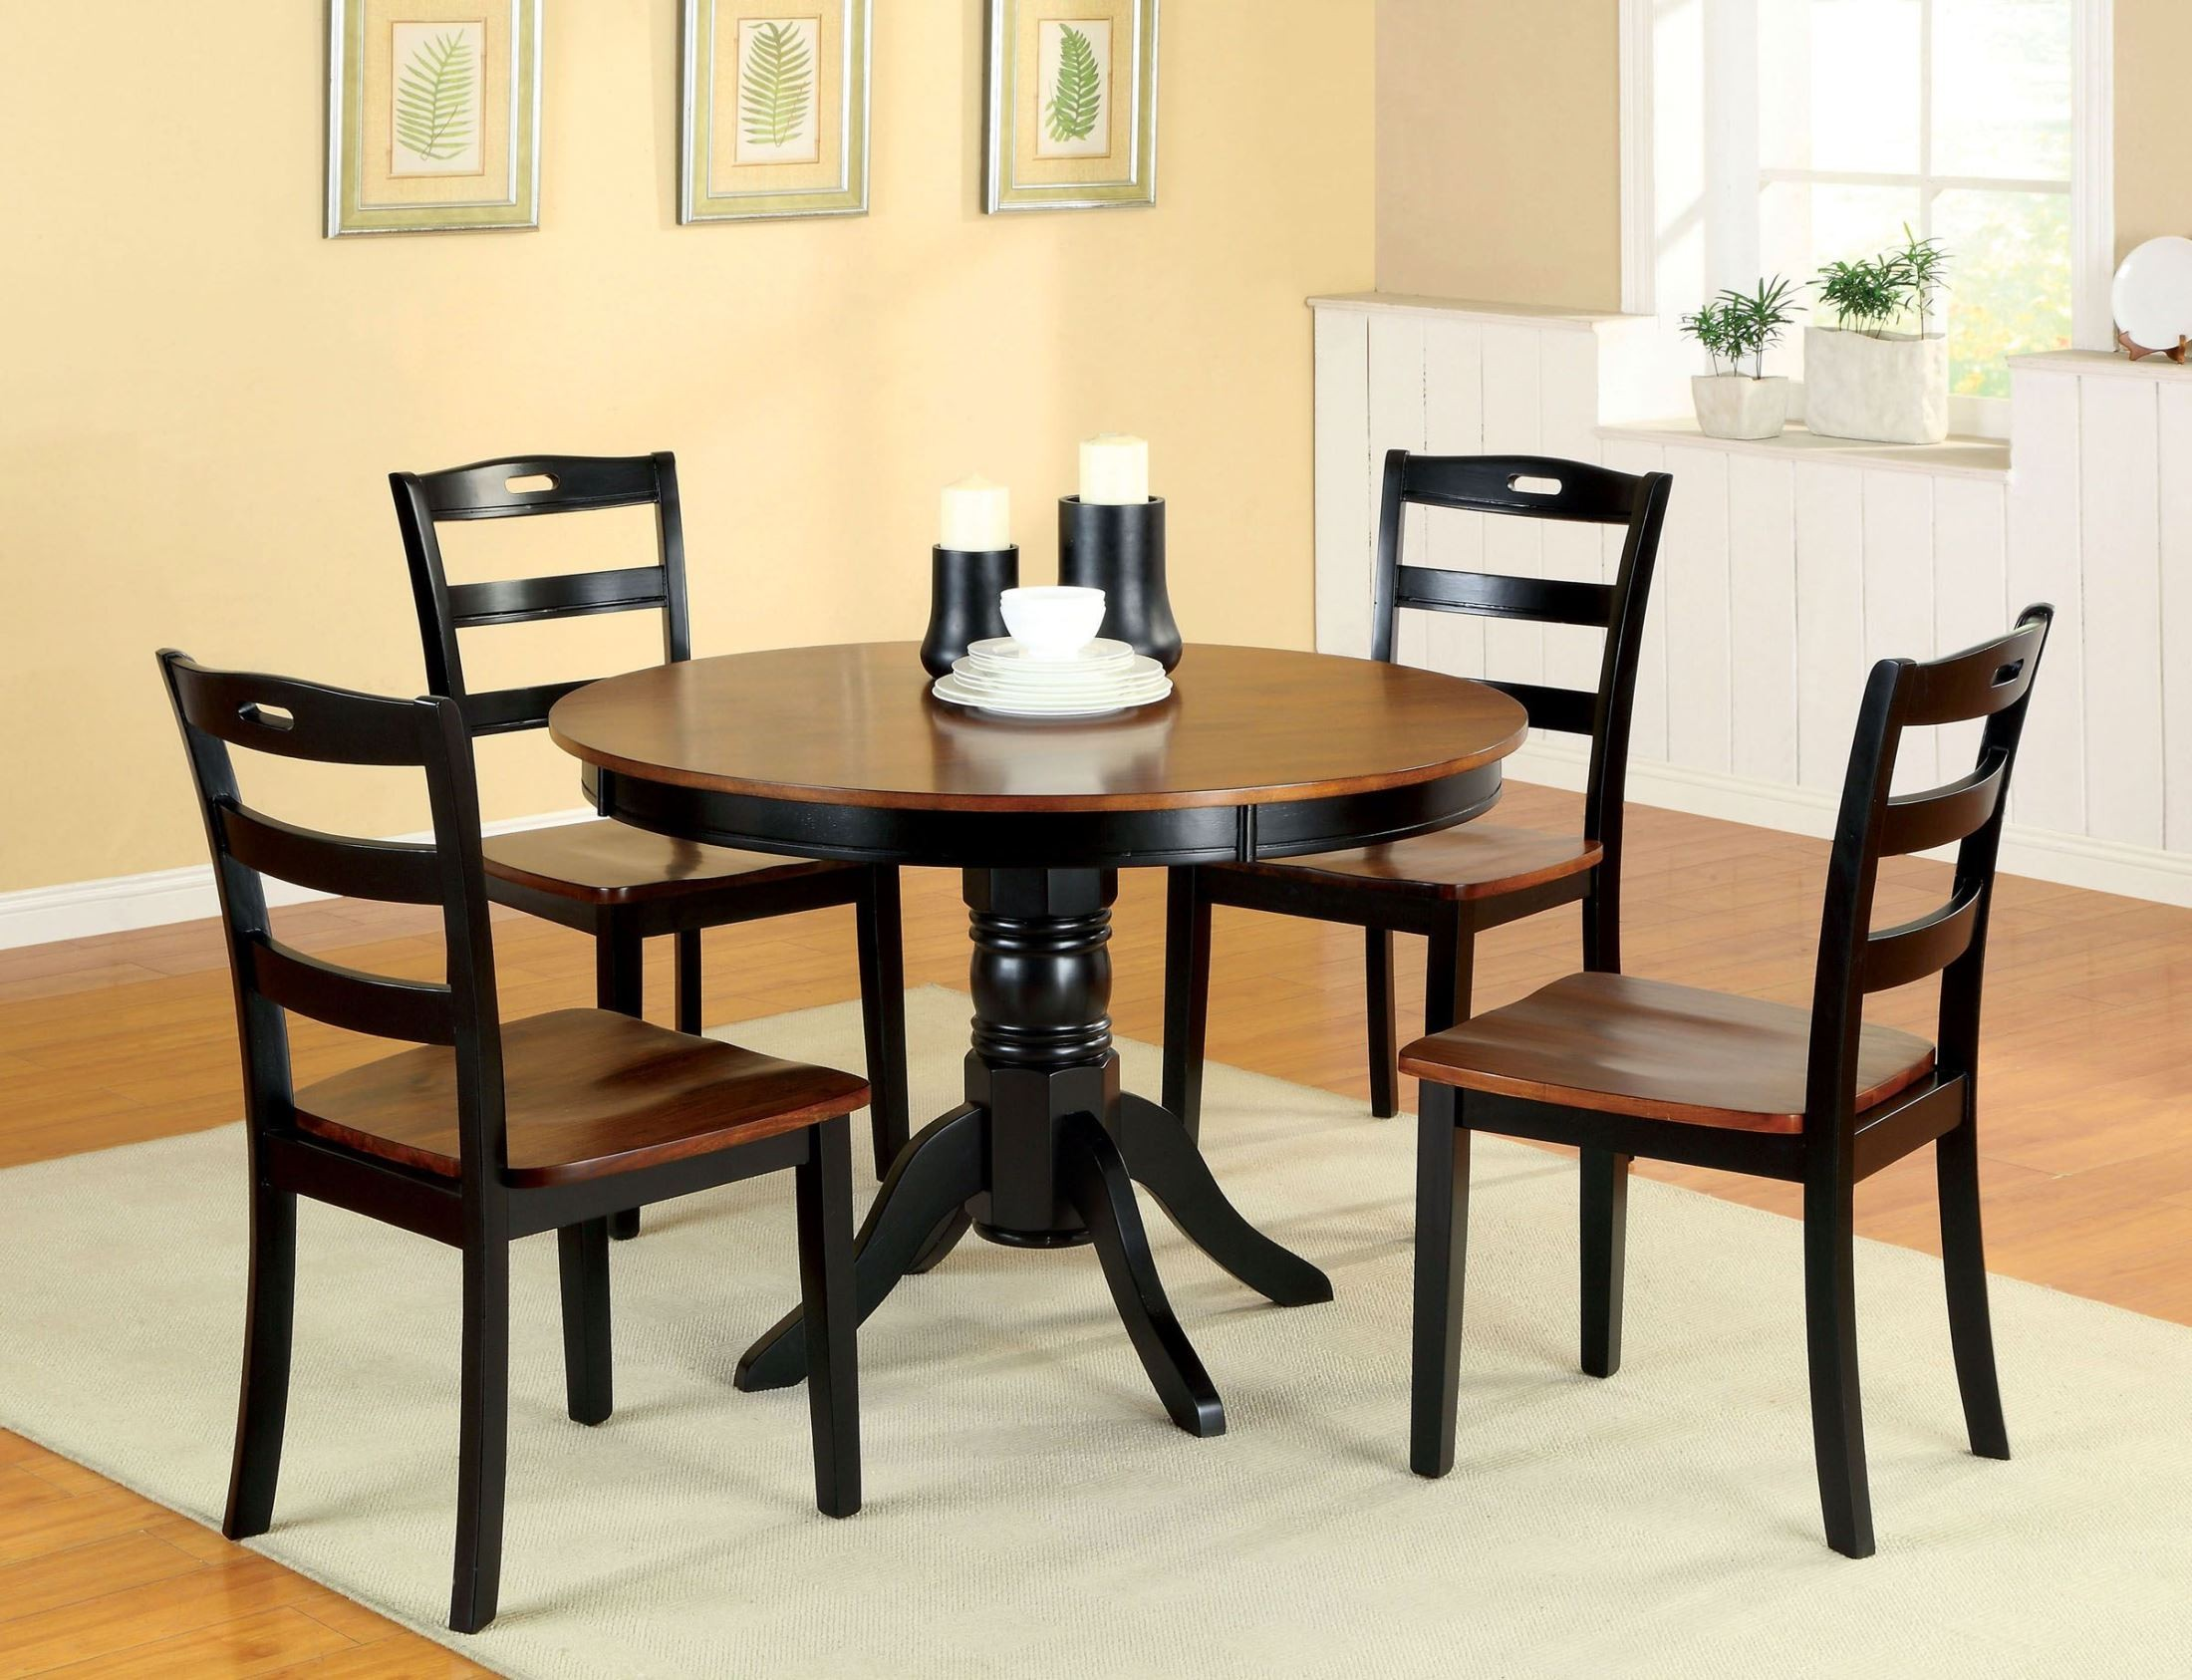 Johnstown antique oak and black round pedestal dining room for Antique dining room sets